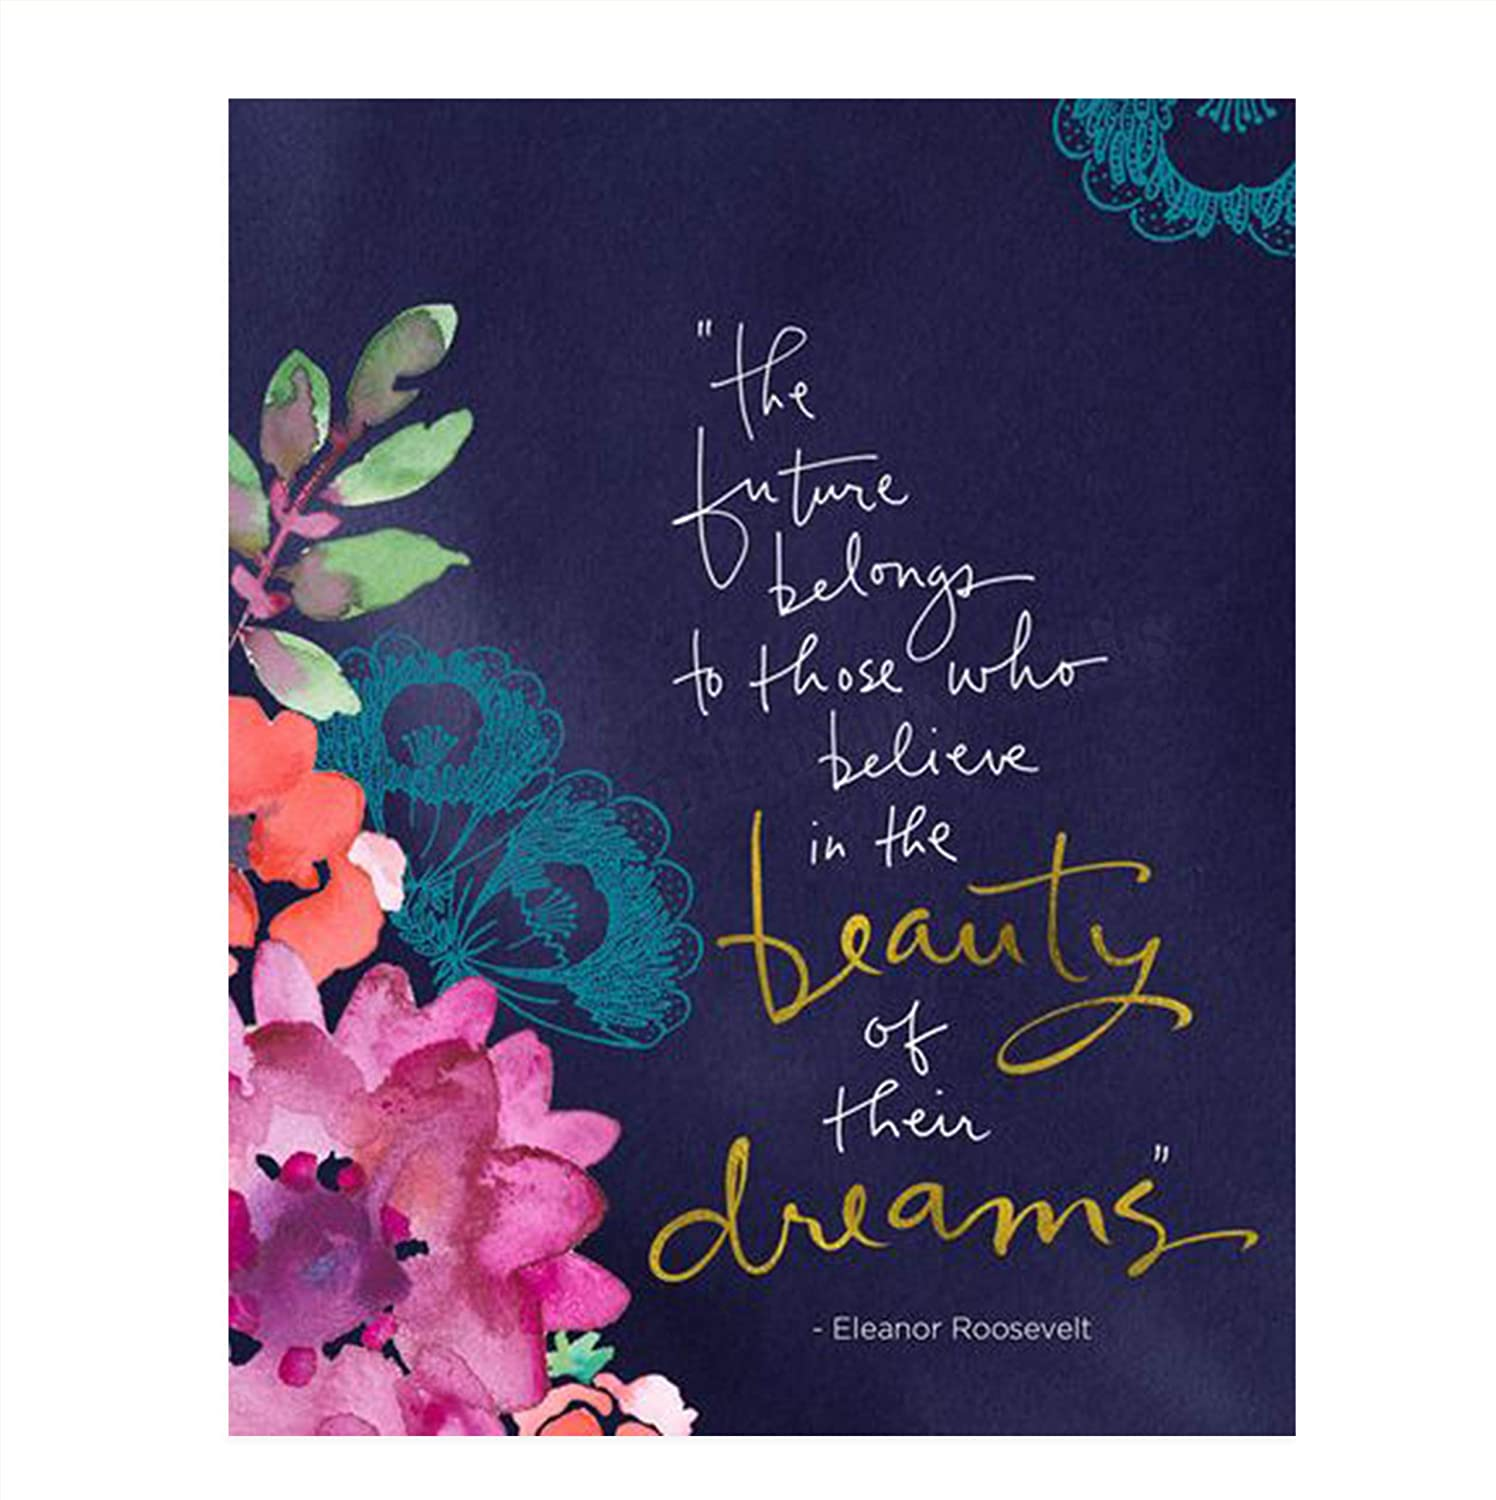 """Eleanor Roosevelt Quotes Wall Art- """"The Future Belong-Those Who Believe""""-8 x 10"""" Modern Art Floral Wall Print-Ready to Frame. Inspirational Home & Office Décor. Great Quote for Personal Encouragement."""